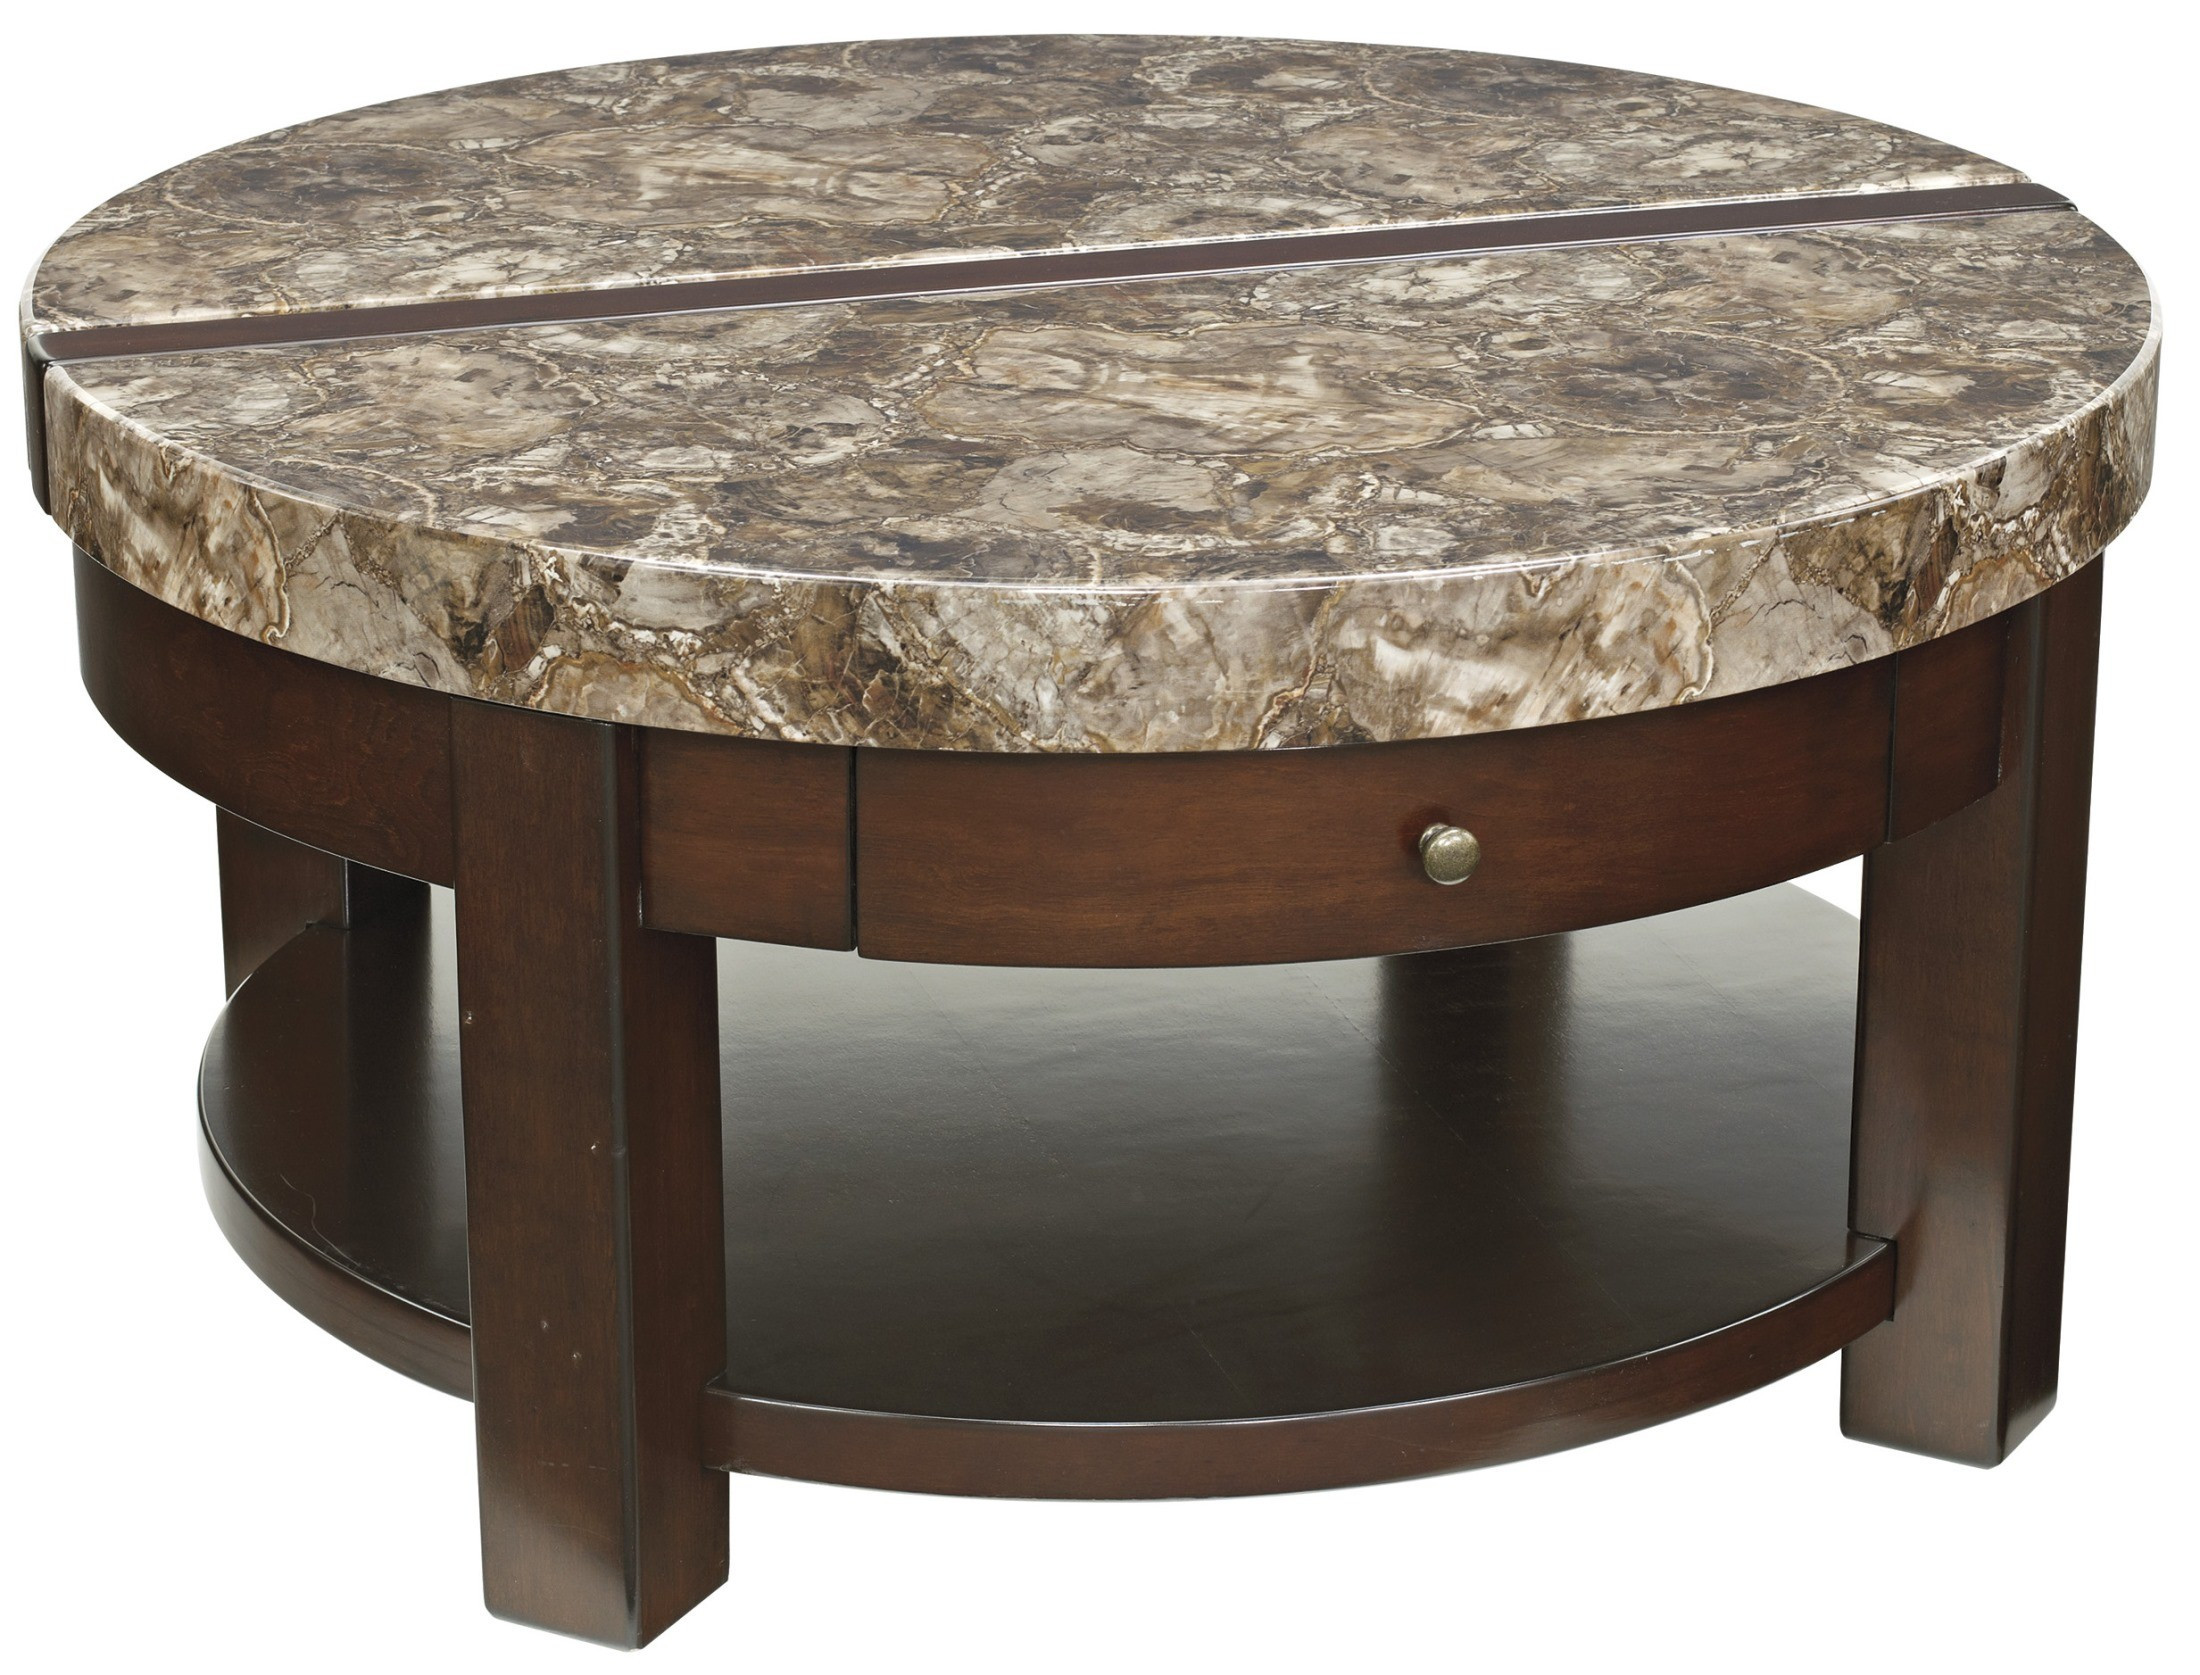 Best ideas about Round Lift Top Coffee Table . Save or Pin Kraleene Round Lift Top Cocktail Table from Ashley T687 8 Now.